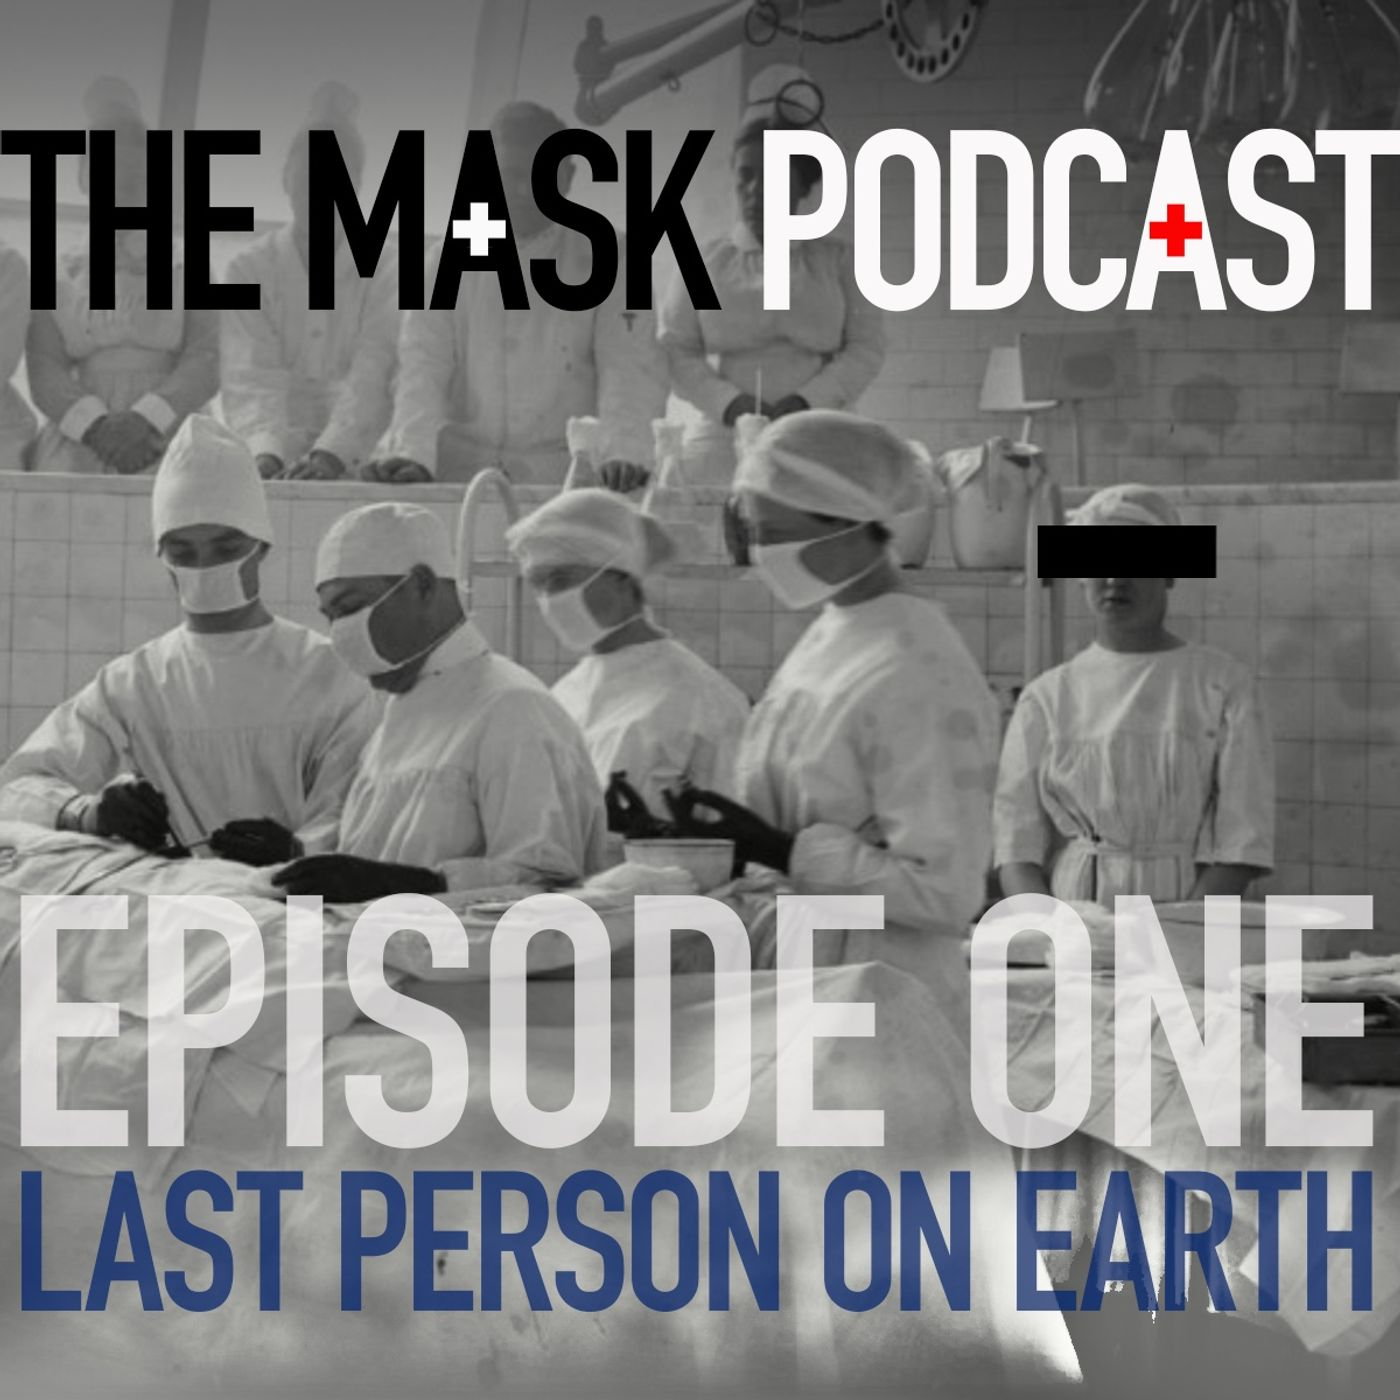 """Ep 1: """"LAST PERSON ON EARTH"""" Dr. Karen, Physician - NYC"""